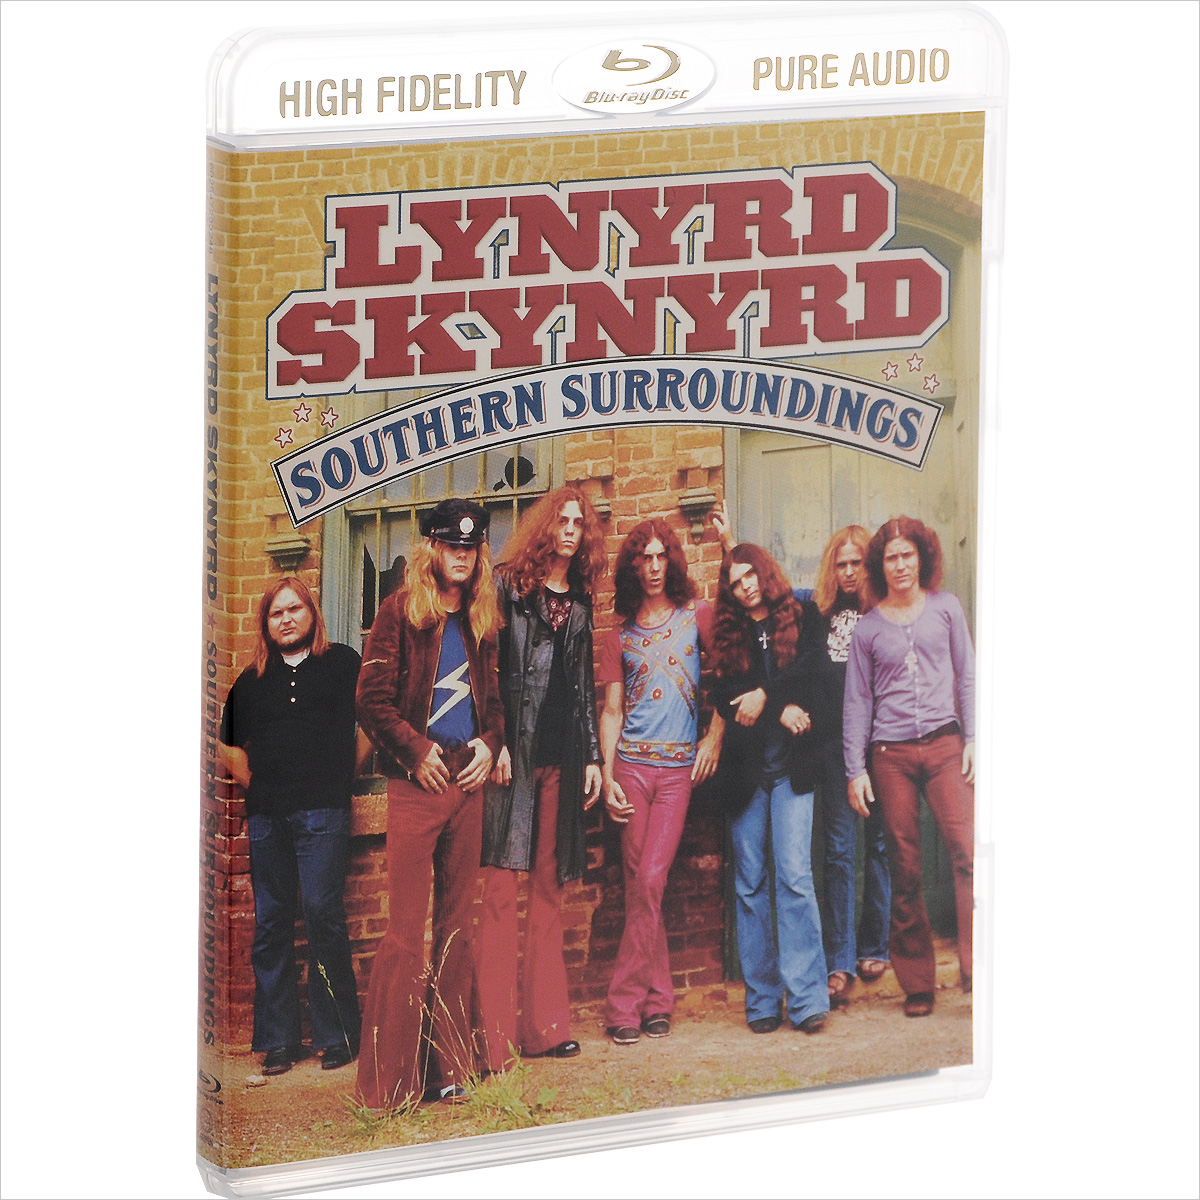 Lynyrd Skynyrd Lynyrd Skynyrd. Southern Surroundings (Blu-Ray Audio) francis rossi live from st luke s london blu ray